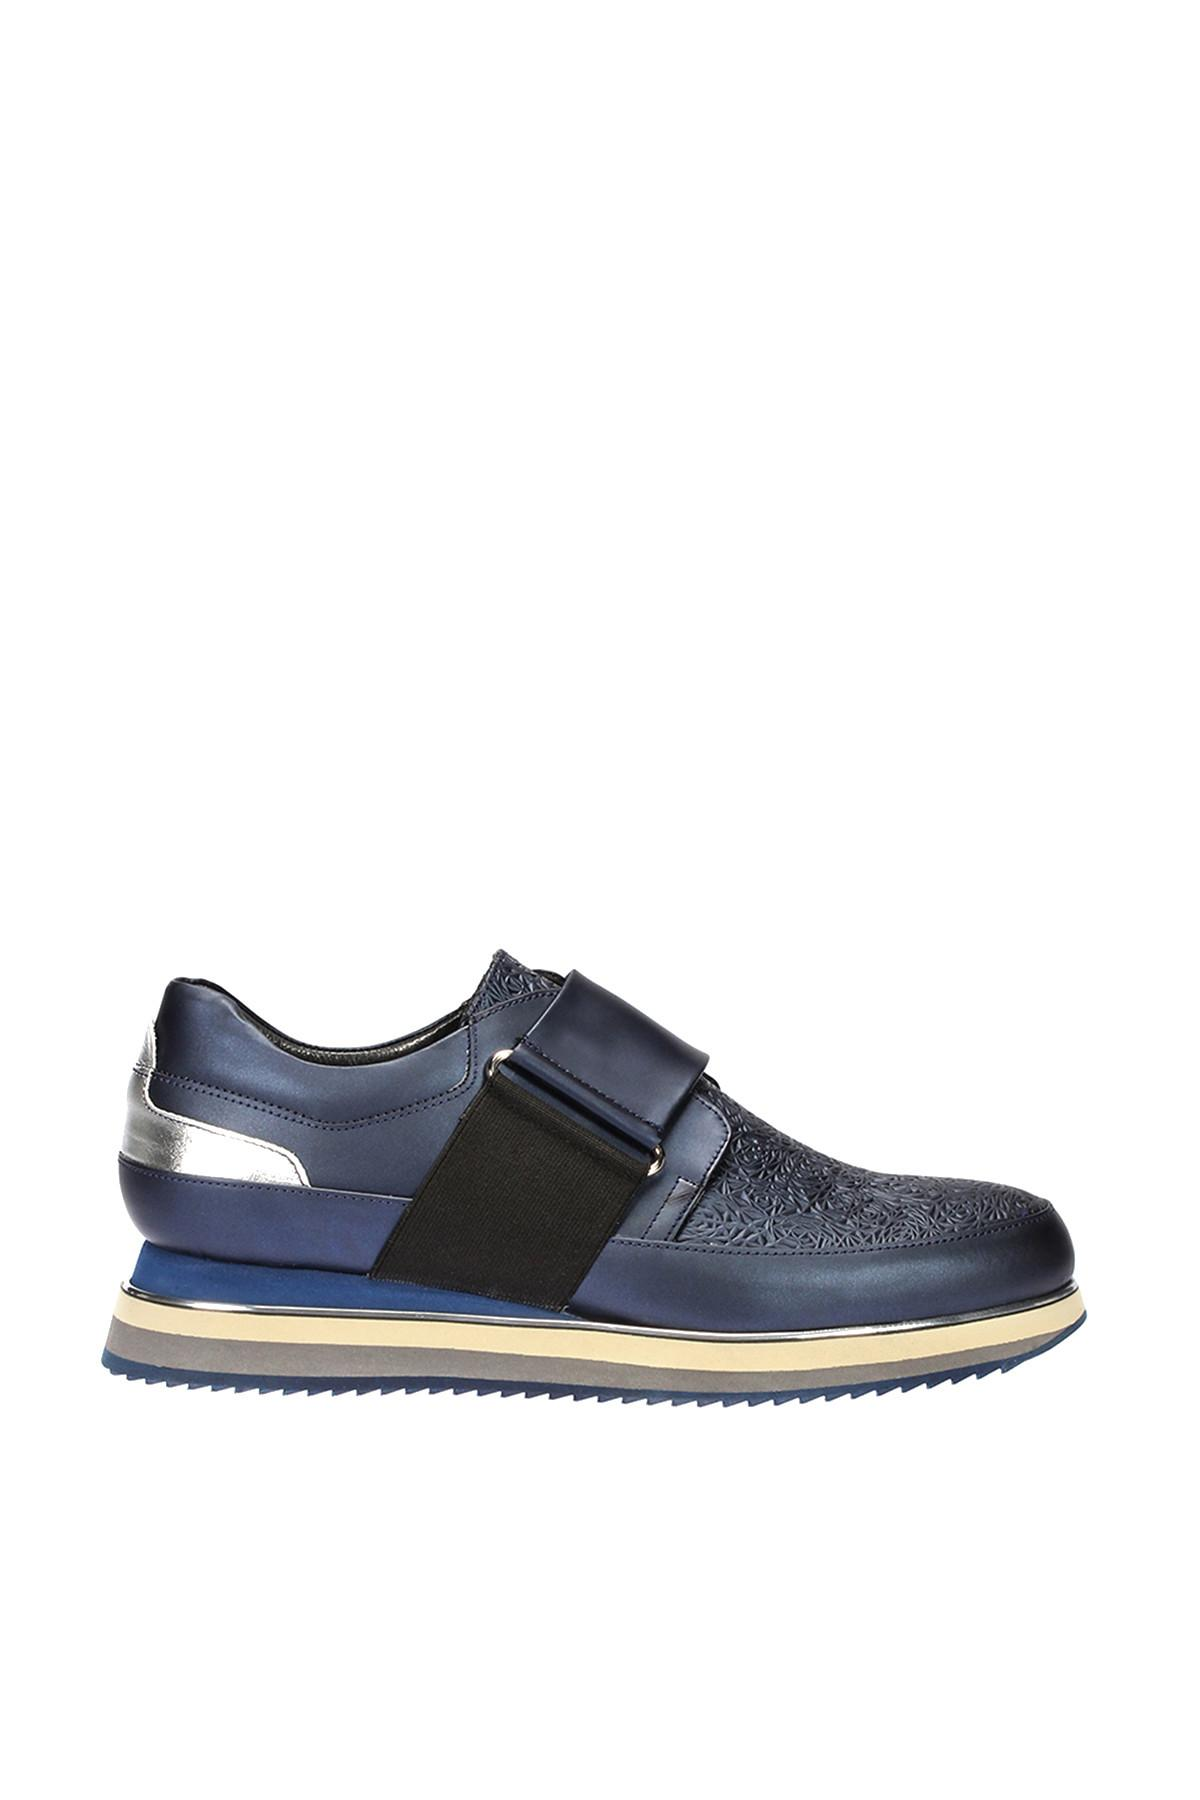 Pearl Genuine Leather Navy Blue Men 'S Sneaker 120130003812()